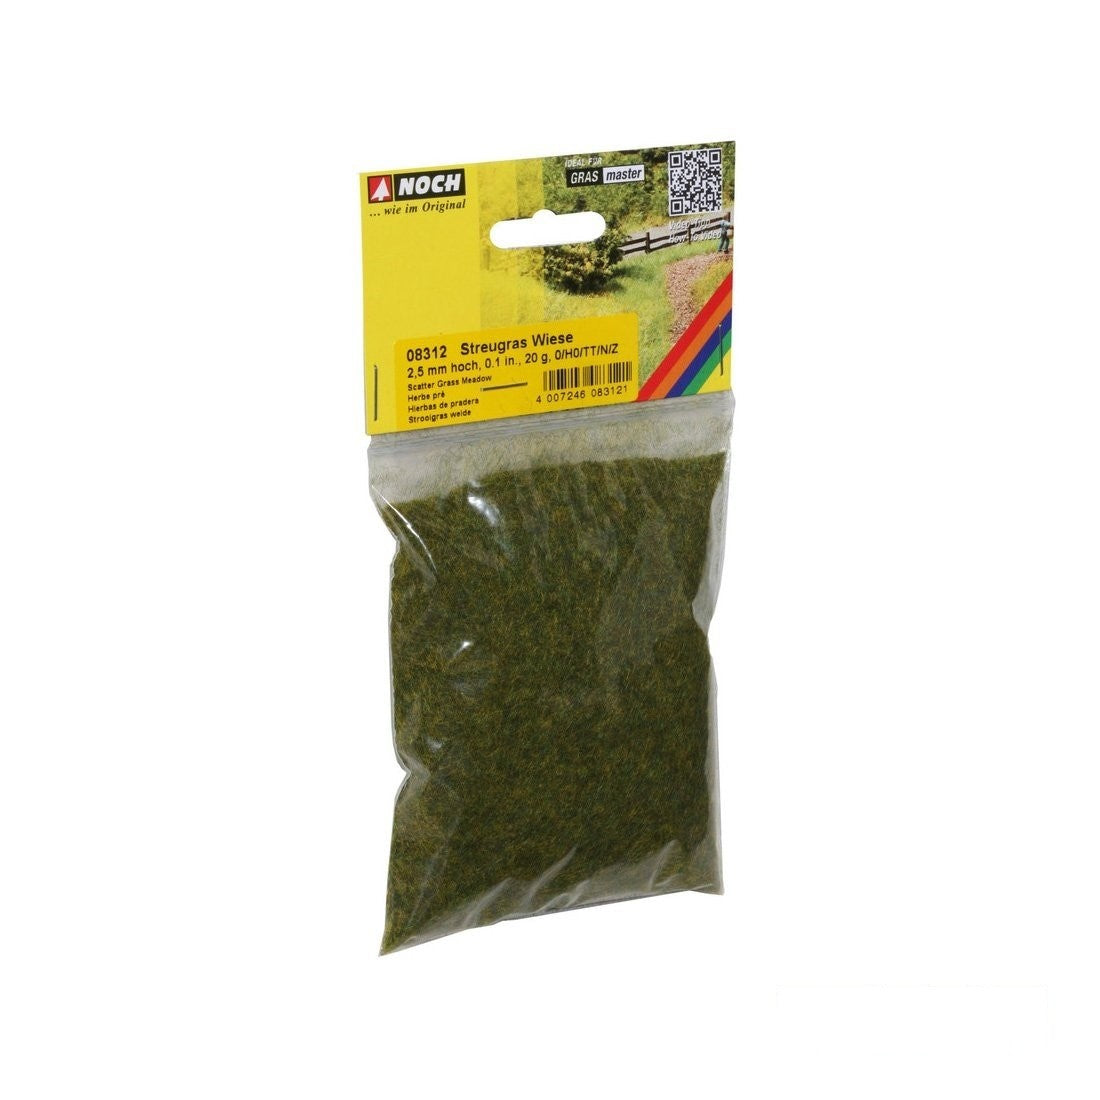 Static Grass: Noch - 2.5mm - 20g Bag